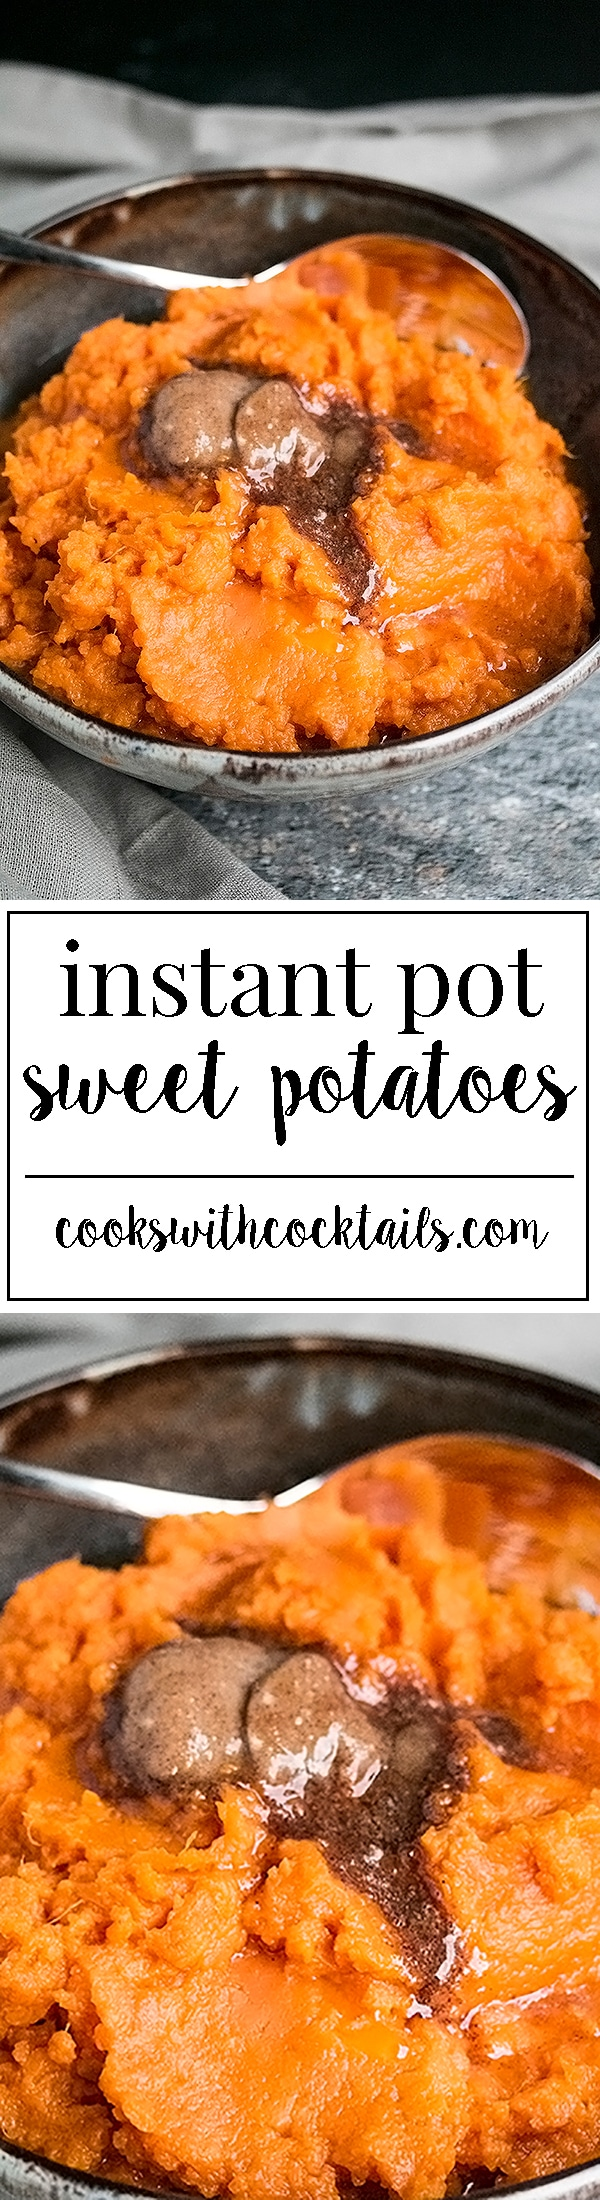 Instant pot sweet potatoes are a incredibly easy, healthy, colorful and delicious addition to any holiday meal or any meal for that matter.#instantpotrecipes #sweetpotatoes